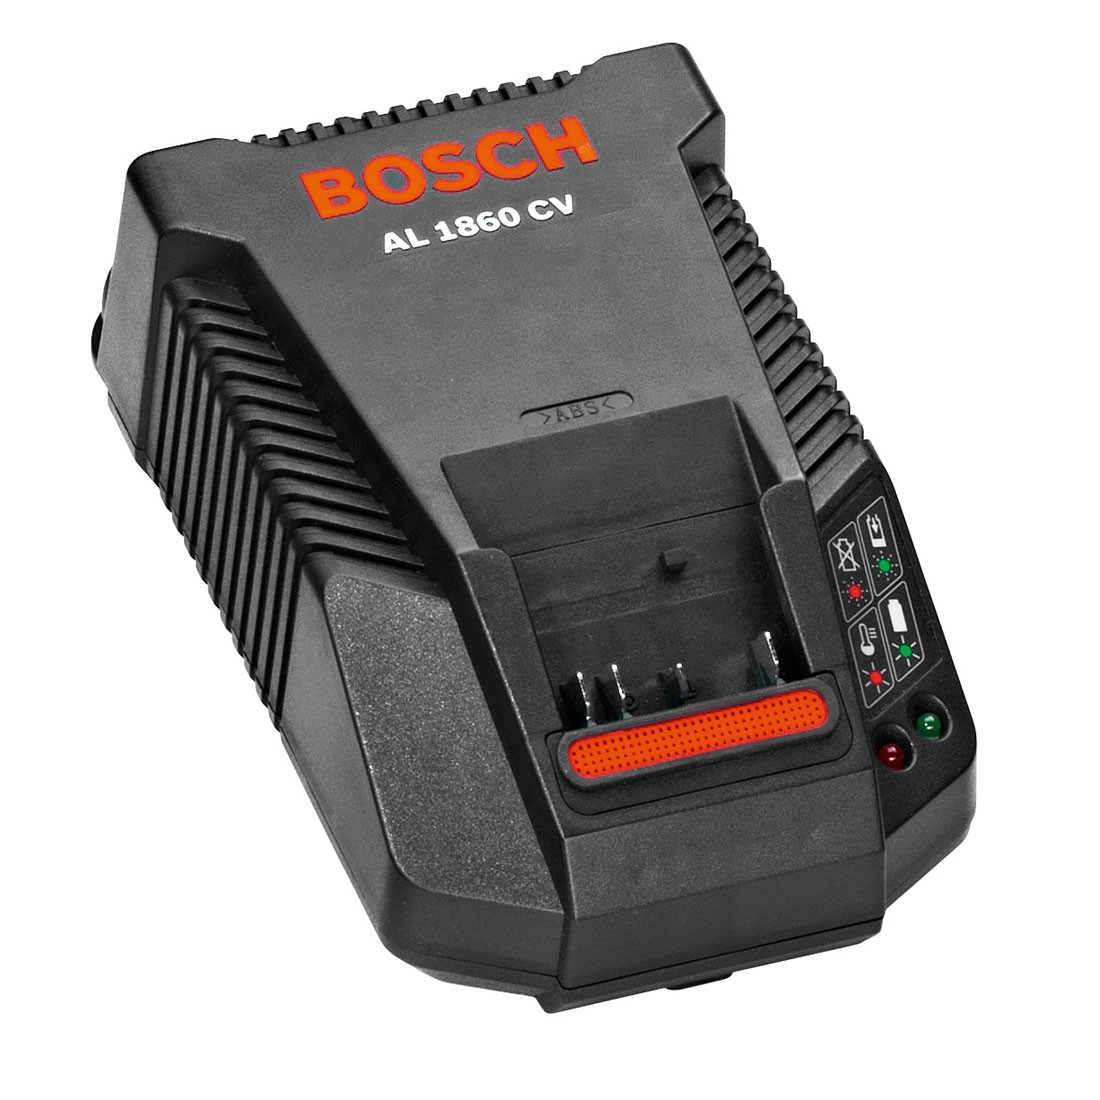 bosch al 1860 cv 14v to 18v battery charger 2607225324